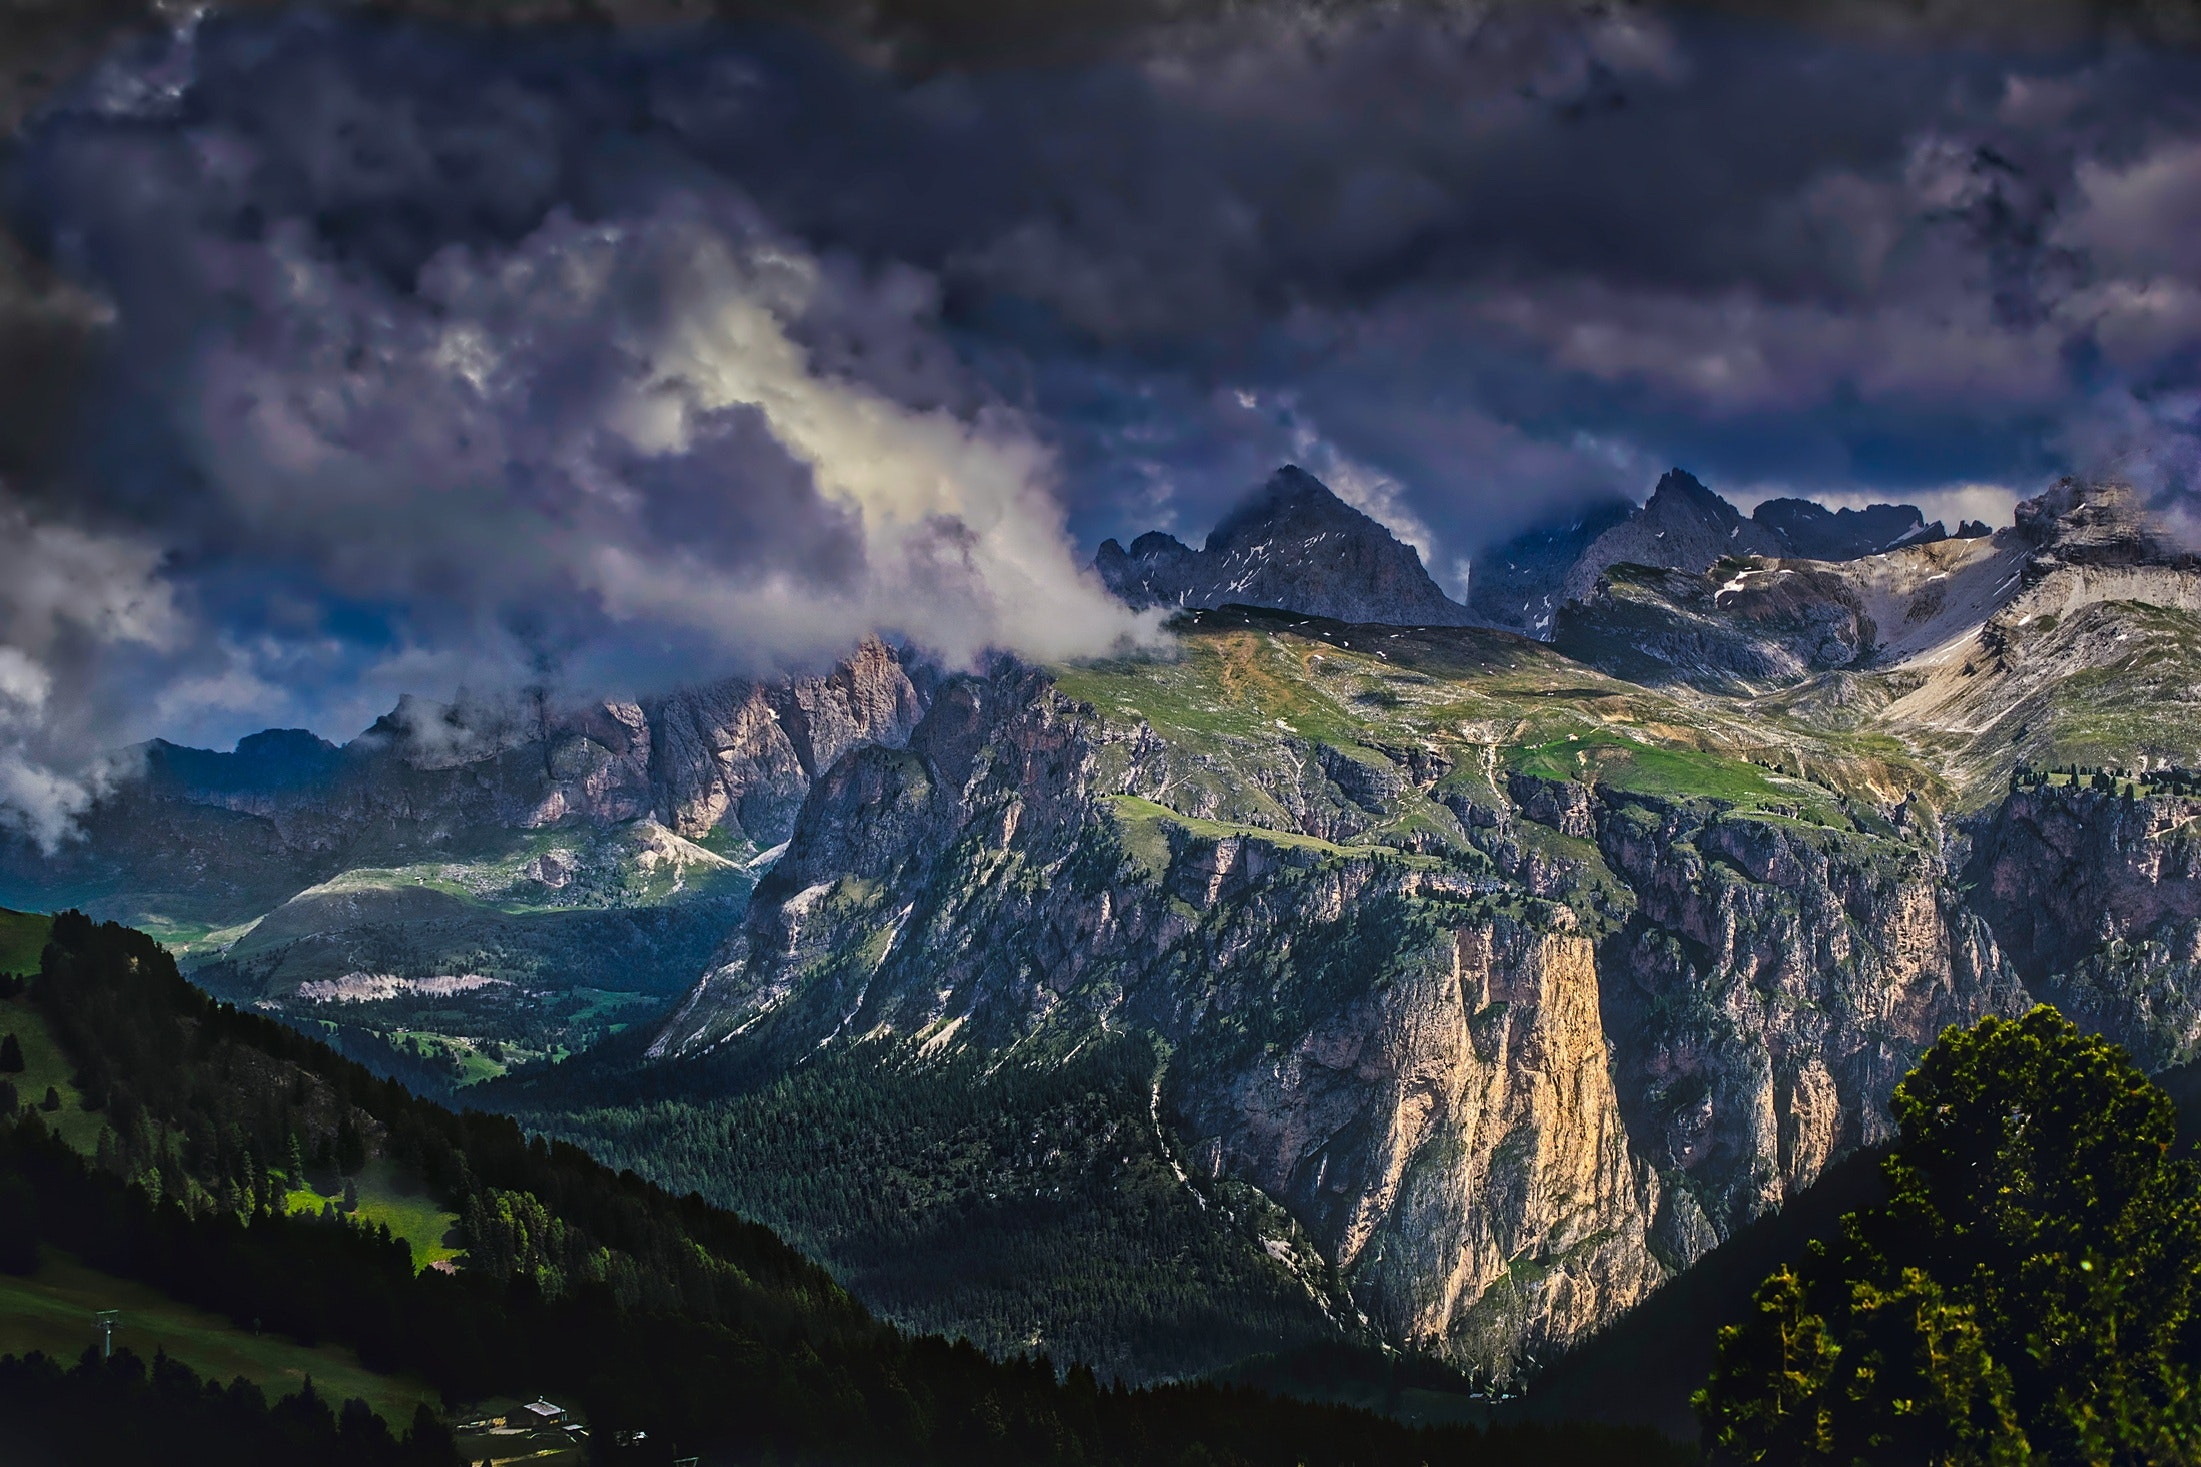 Mountains Under Cloudy Sky 183 Free Stock Photo